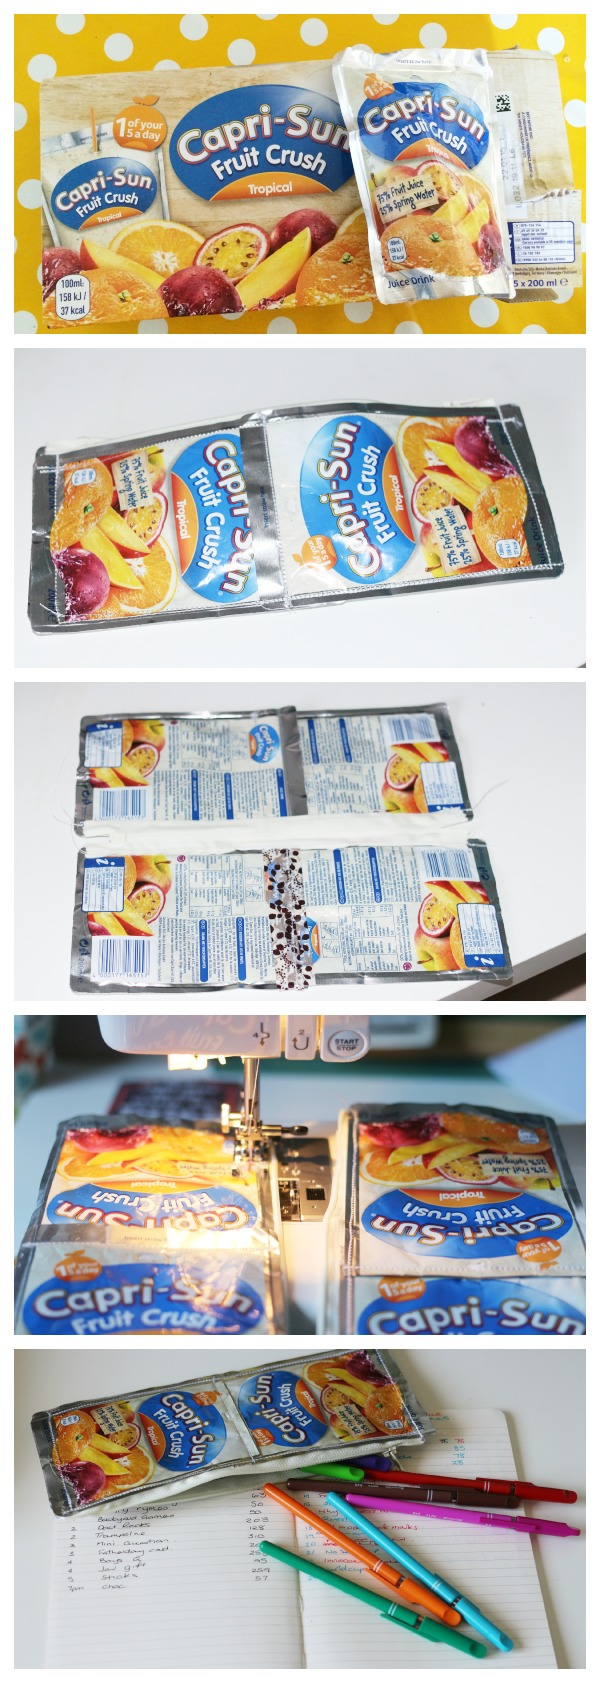 caprisun pencil case how to